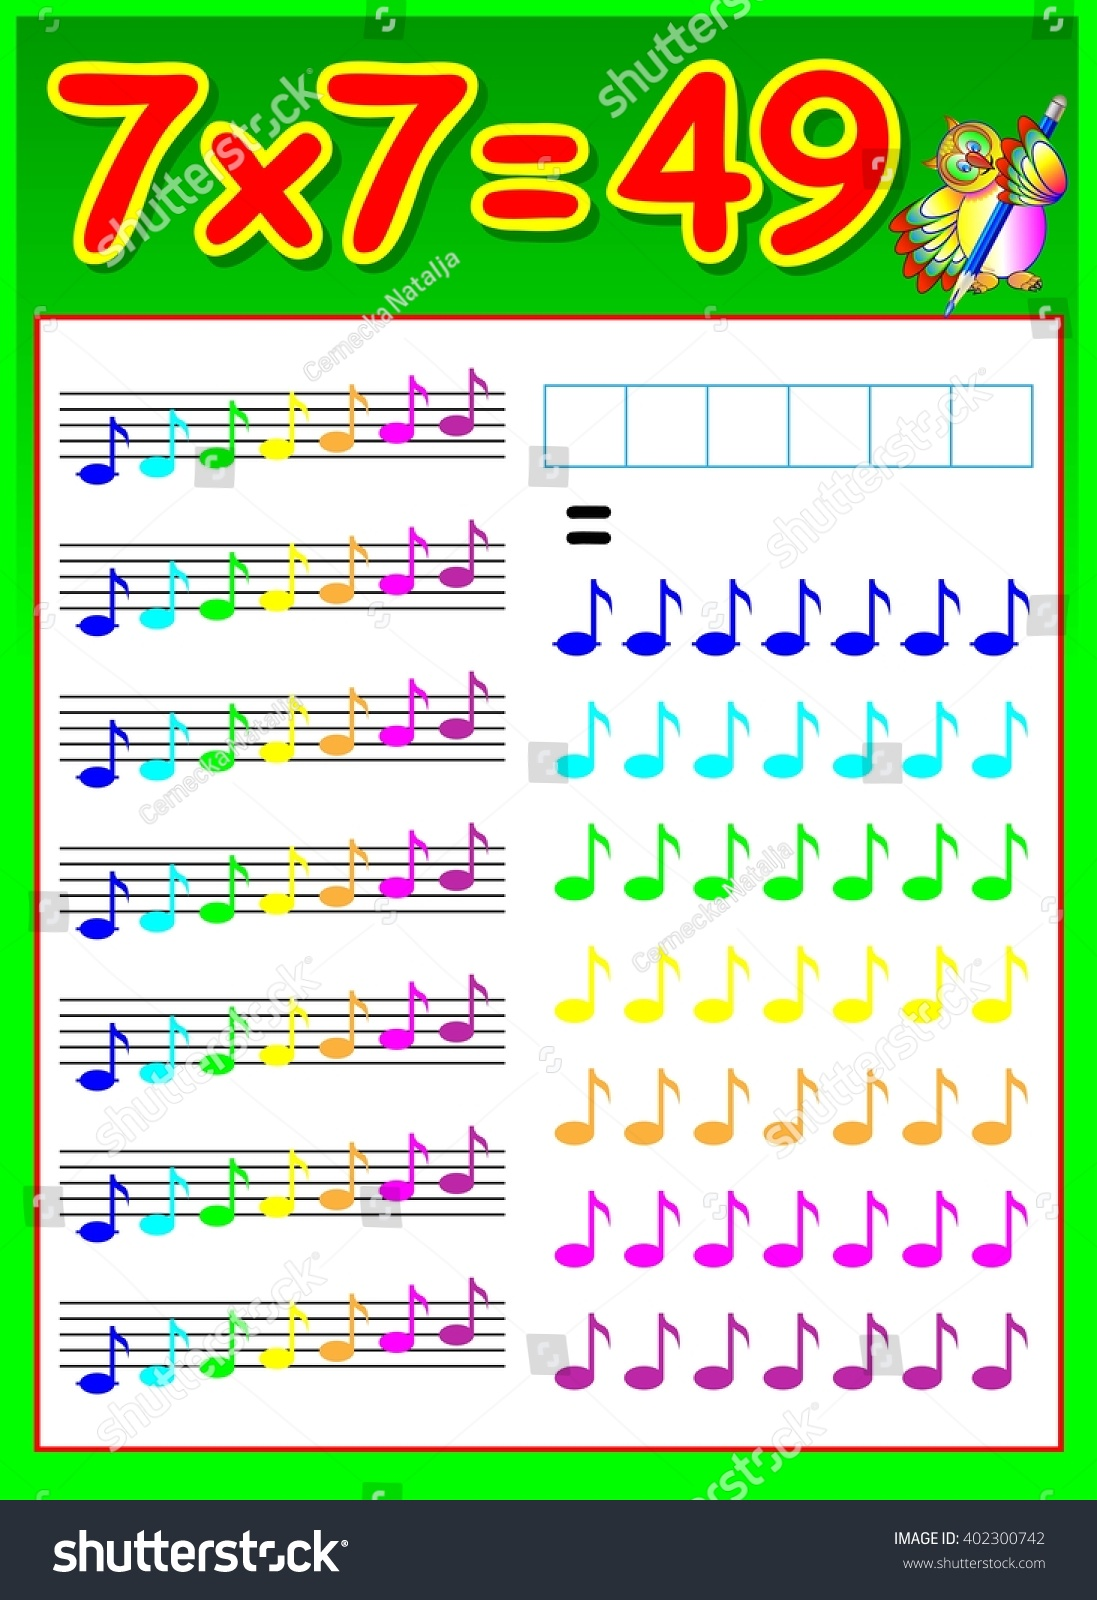 Program for multiplication table gallery periodic table images educational page children multiplication table developing stock educational page for children with multiplication table developing skills gamestrikefo Choice Image